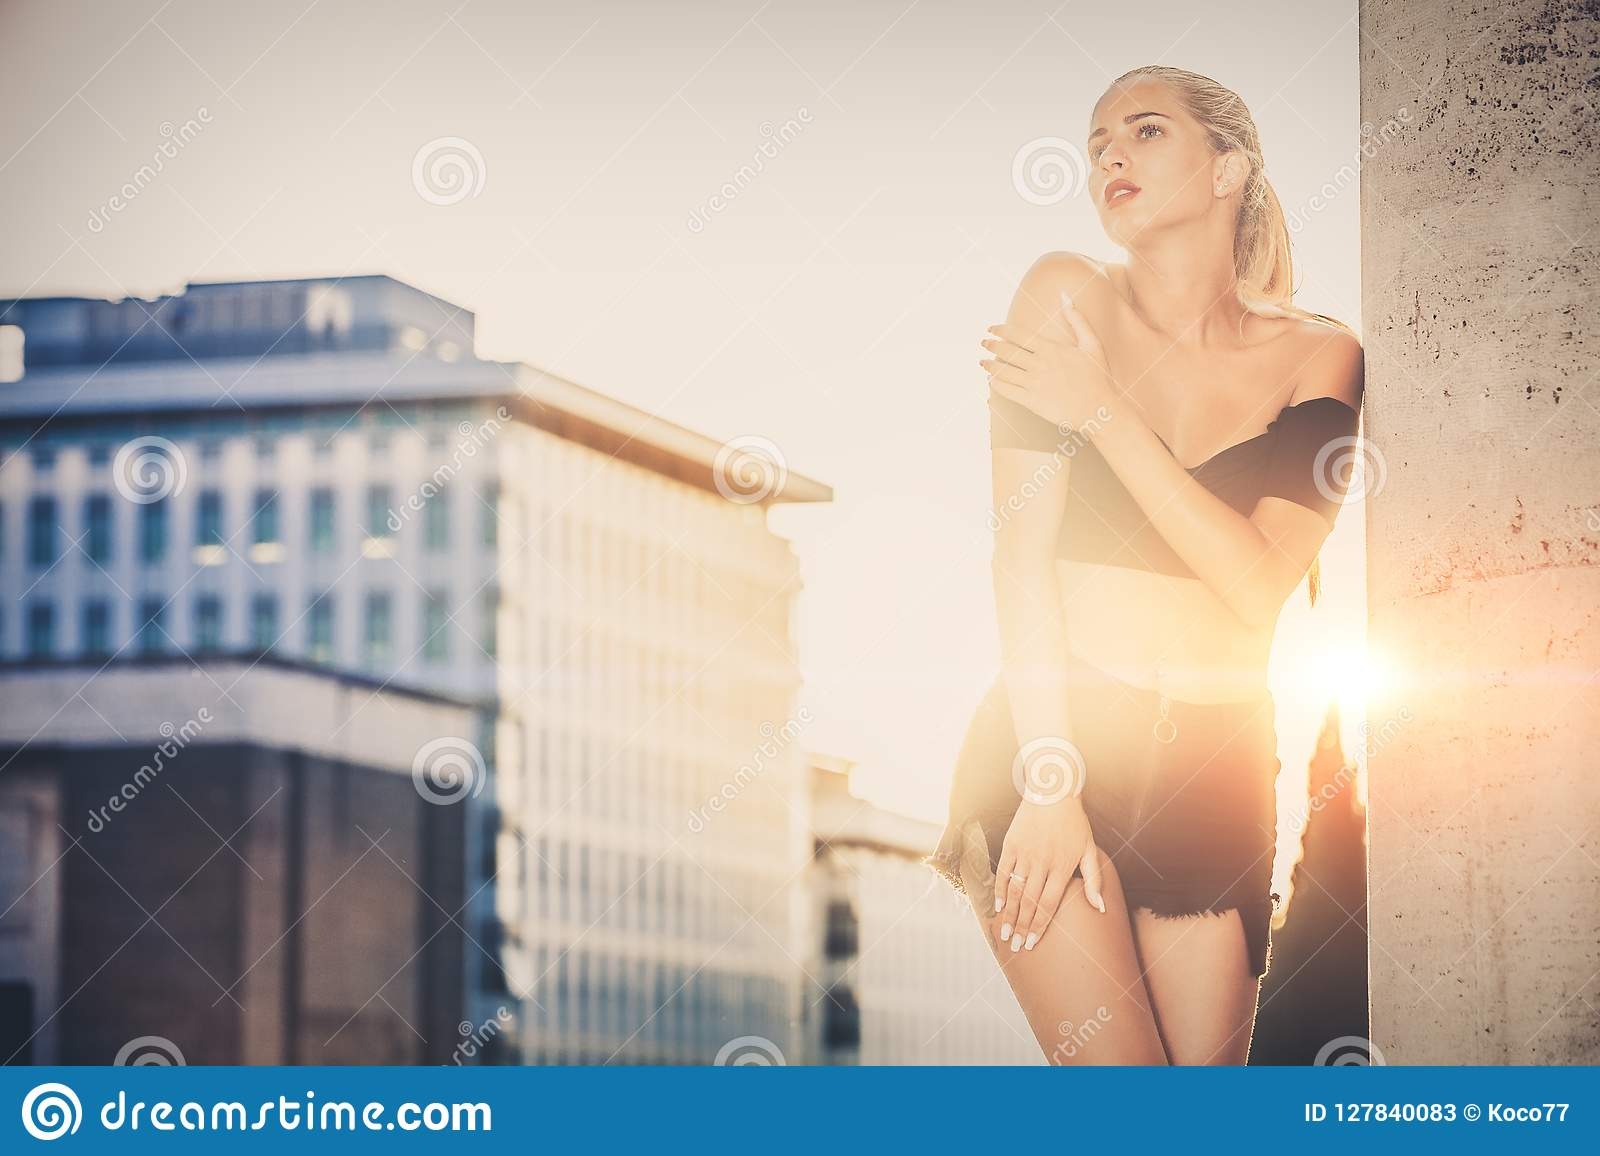 Stylish woman with urban sunset behind. Casual clothes, blonde hair and sensual attitude.